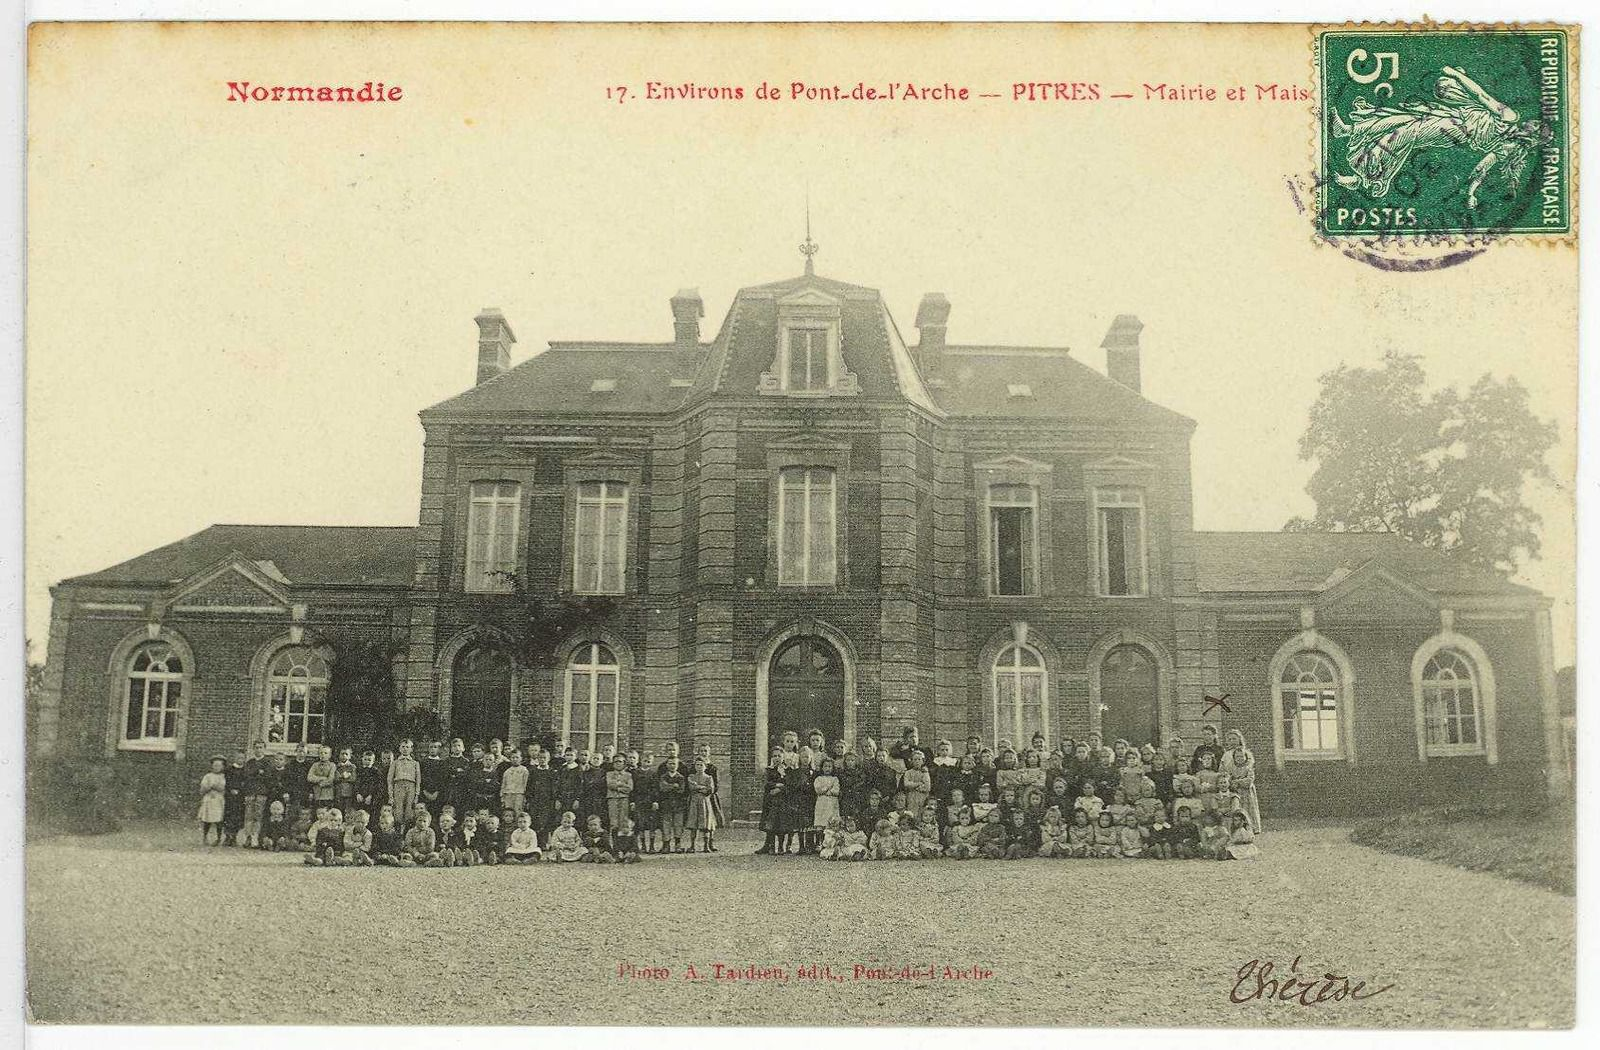 Cartes postales issues des collections des Archives départementales de l'Eure. Une capture d'écran de la carte d'état-major accessible sur le site Géoportail.